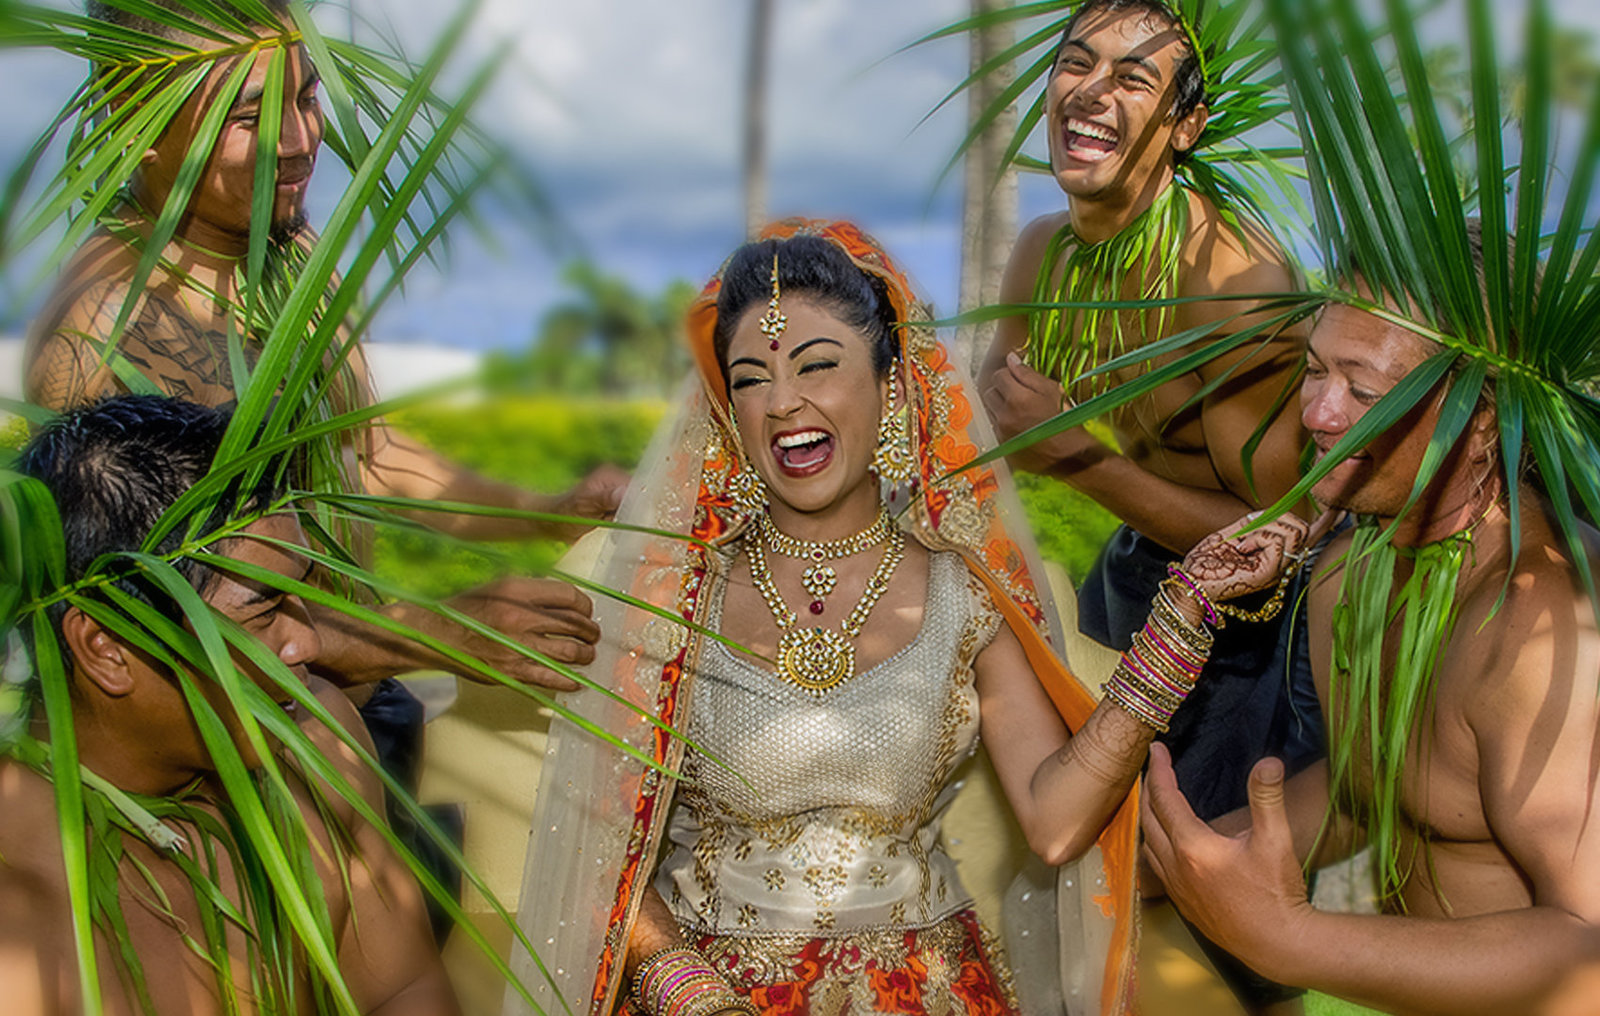 Maui wedding planners | Oahu wedding planners | Kauai wedding planners | Big Island wedding planners | Waikiki wedding planners